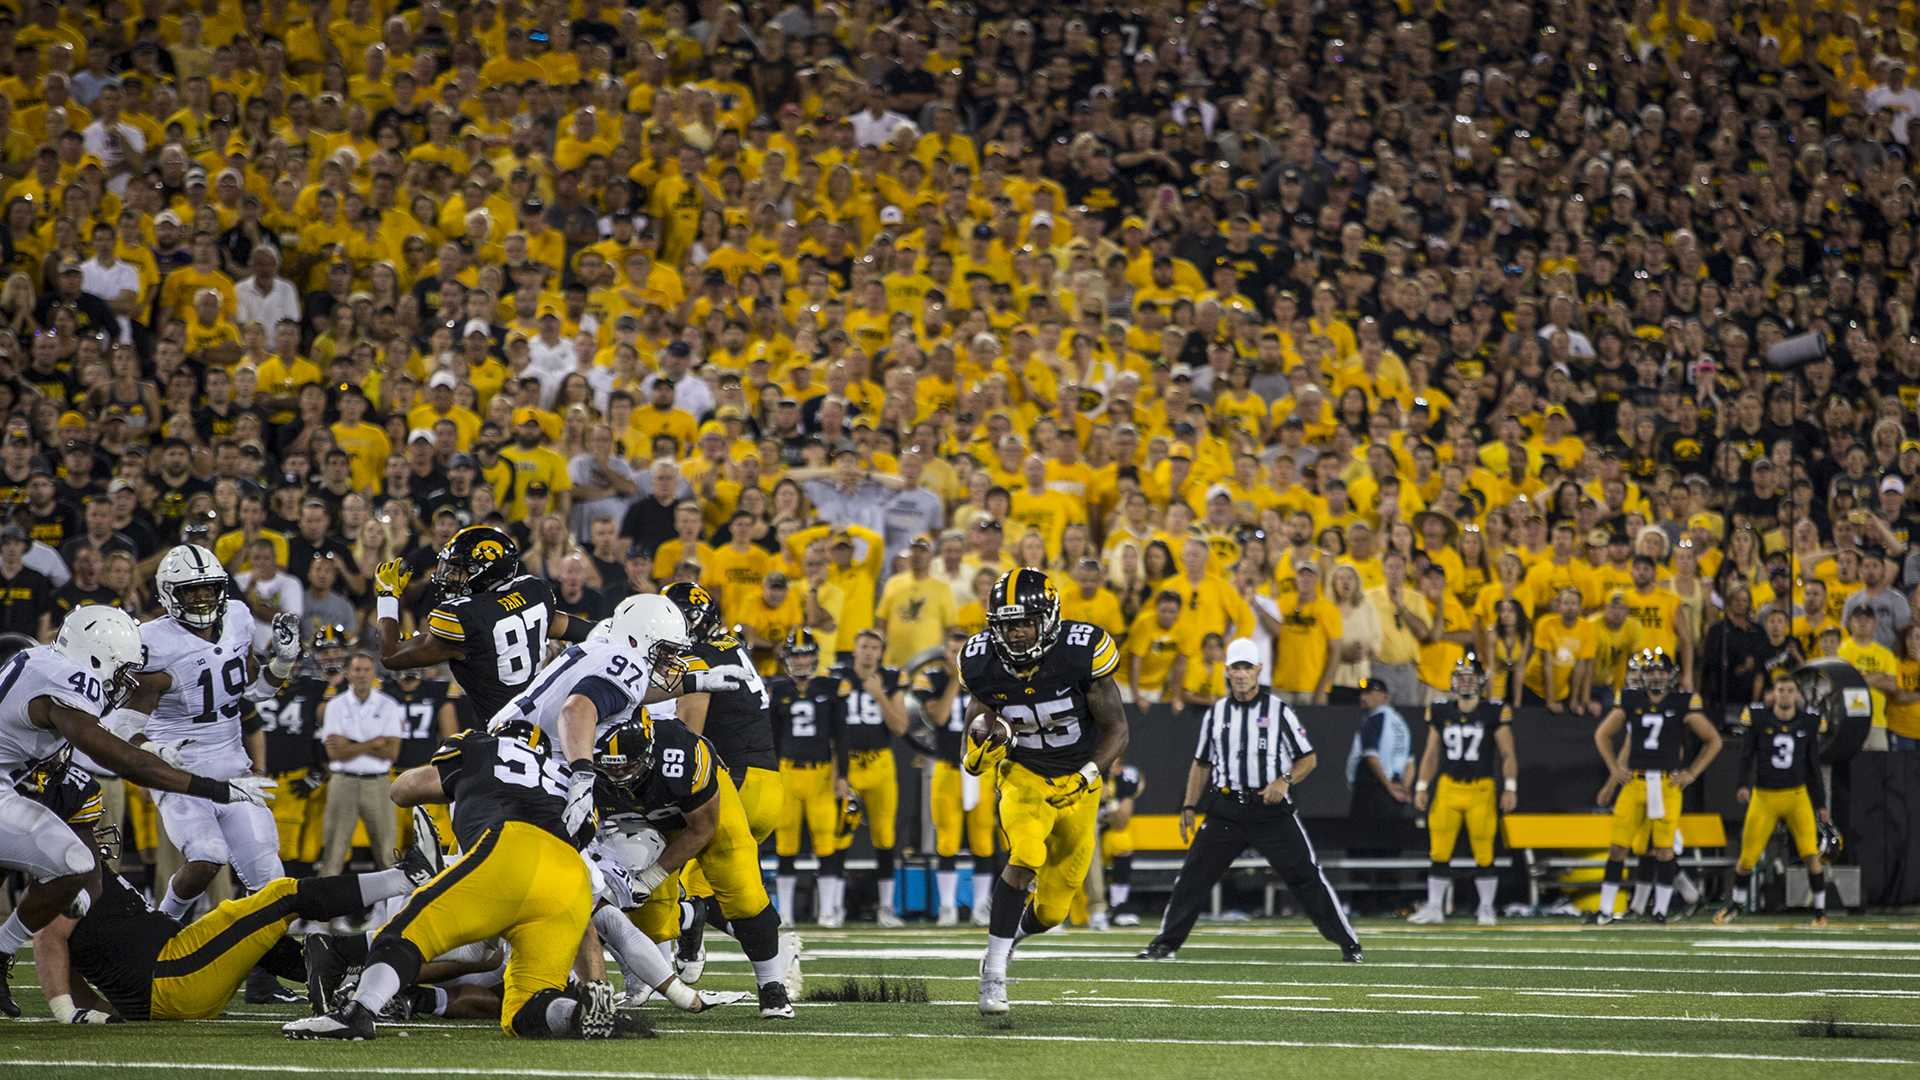 Iowa running back  Akrum Wadley breaks free for a touchdown run during Iowa's game against Penn State at Kinnick Stadium on Sept. 23, 2017. Penn State defeated Iowa 21-19 on a last-second touchdown pass. (Nick Rohlman/The Daily Iowan)